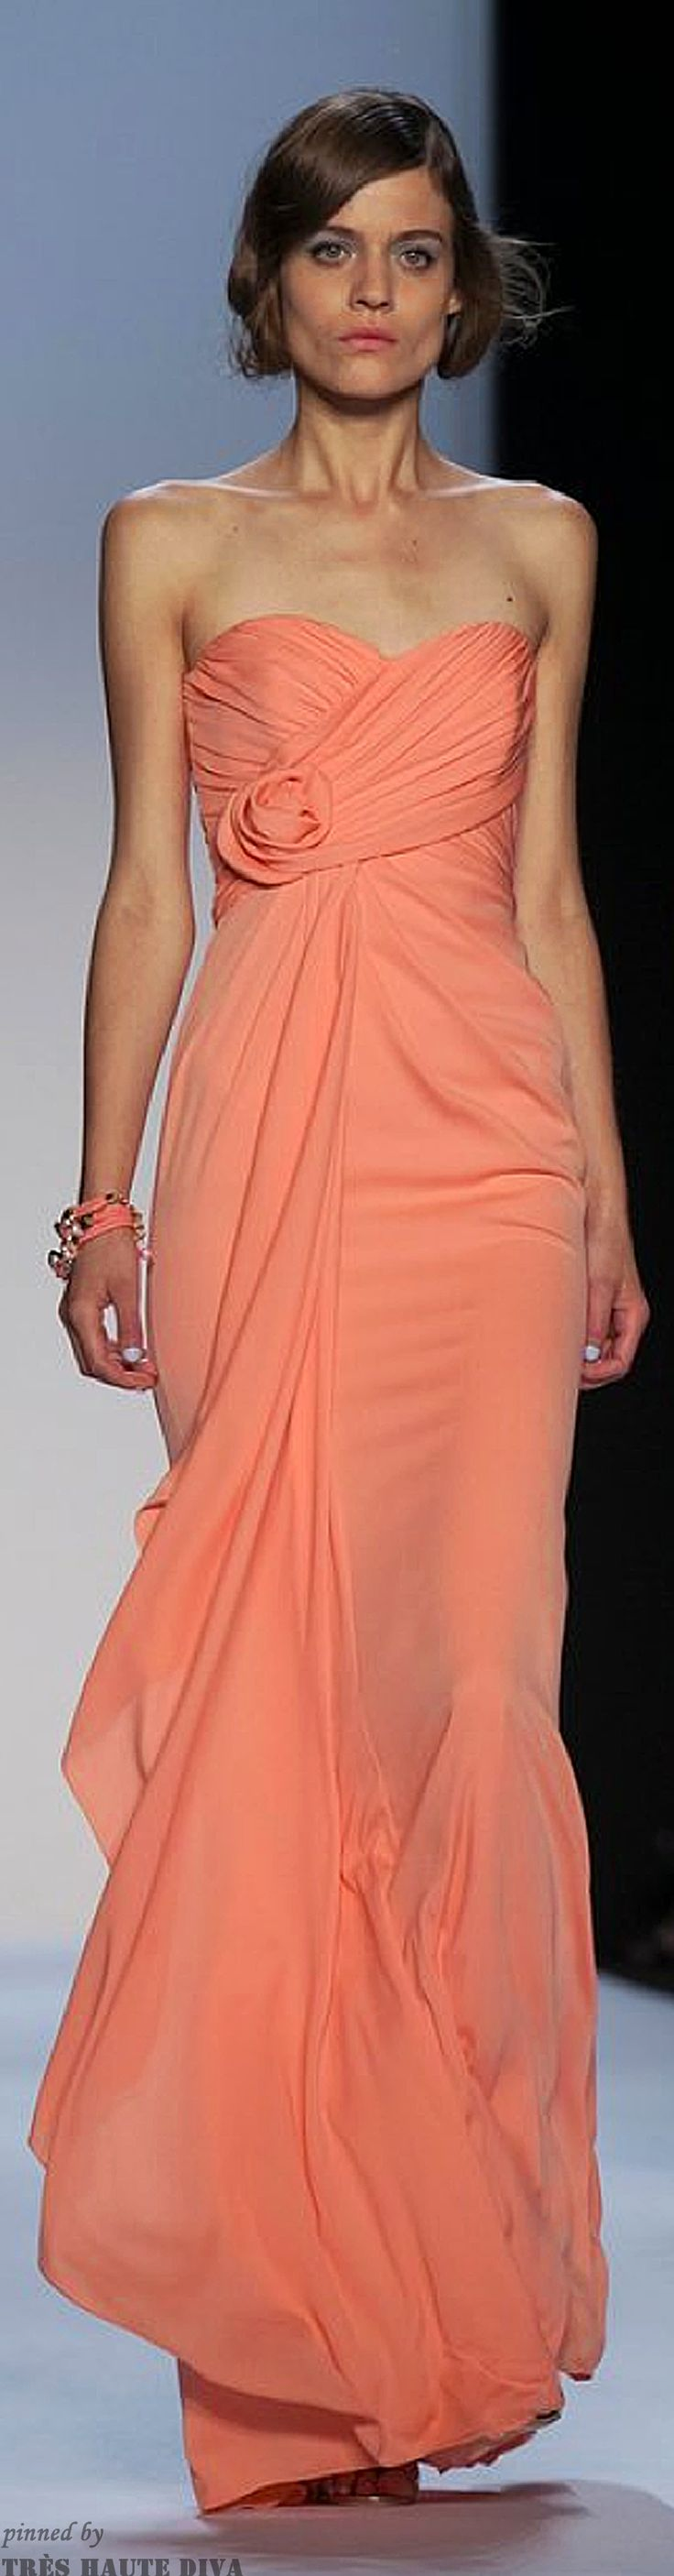 Best 25+ Vestidos Color Salmon Ideas On Pinterest | Vestidos Vintage Vestido Bordado And Falda ...